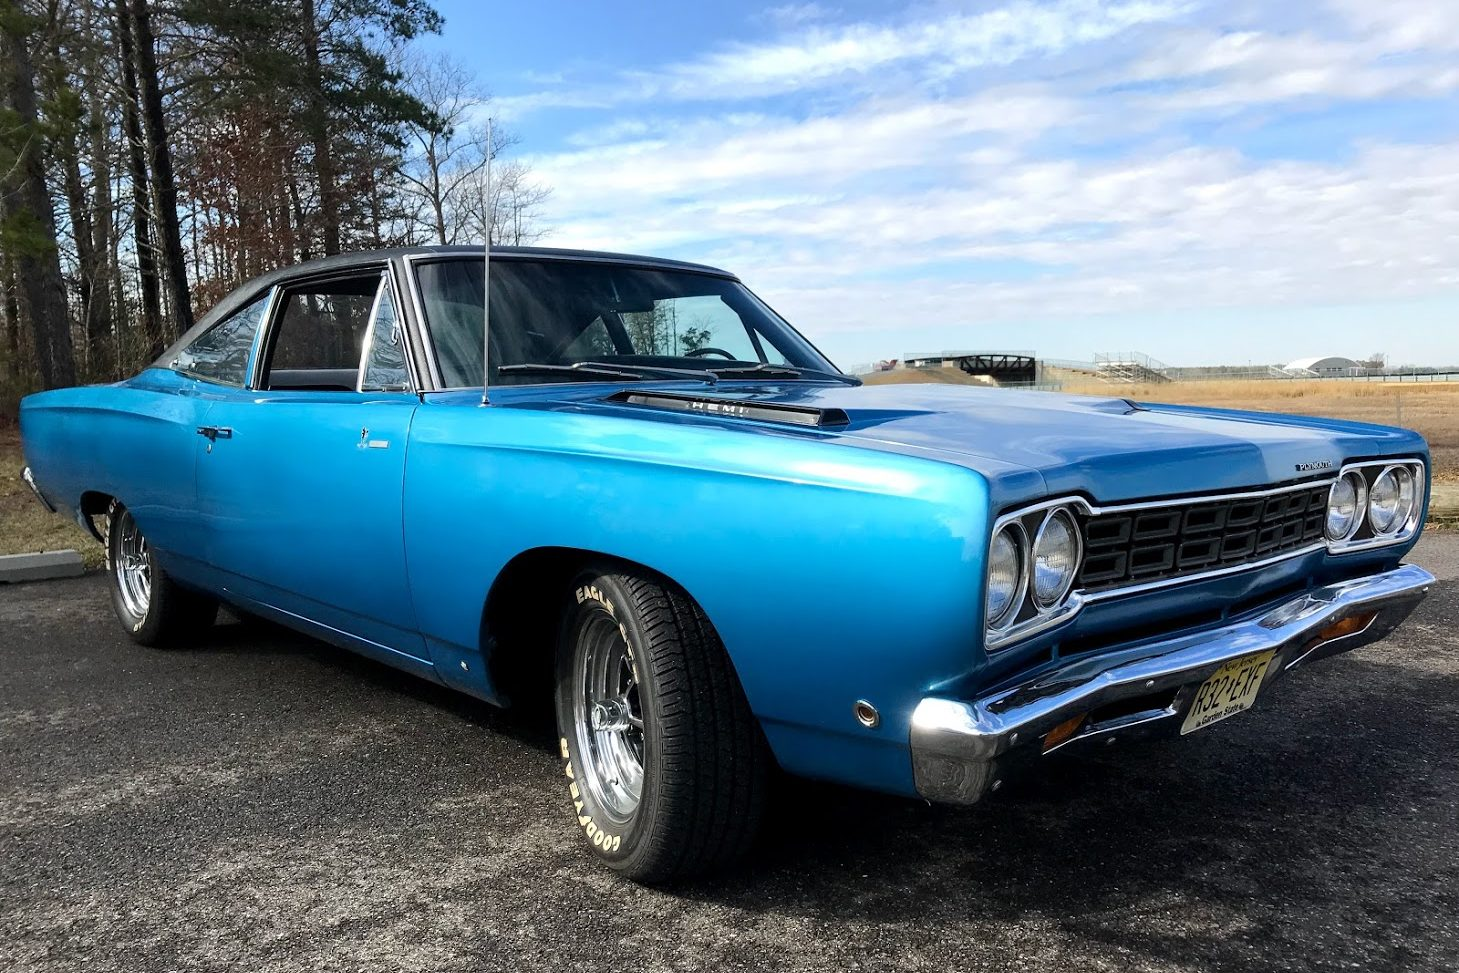 hight resolution of 1968 plymouth road runner 426 hemi 4 speed for sale on bat auctions closed on march 5 2019 lot 16 822 bring a trailer